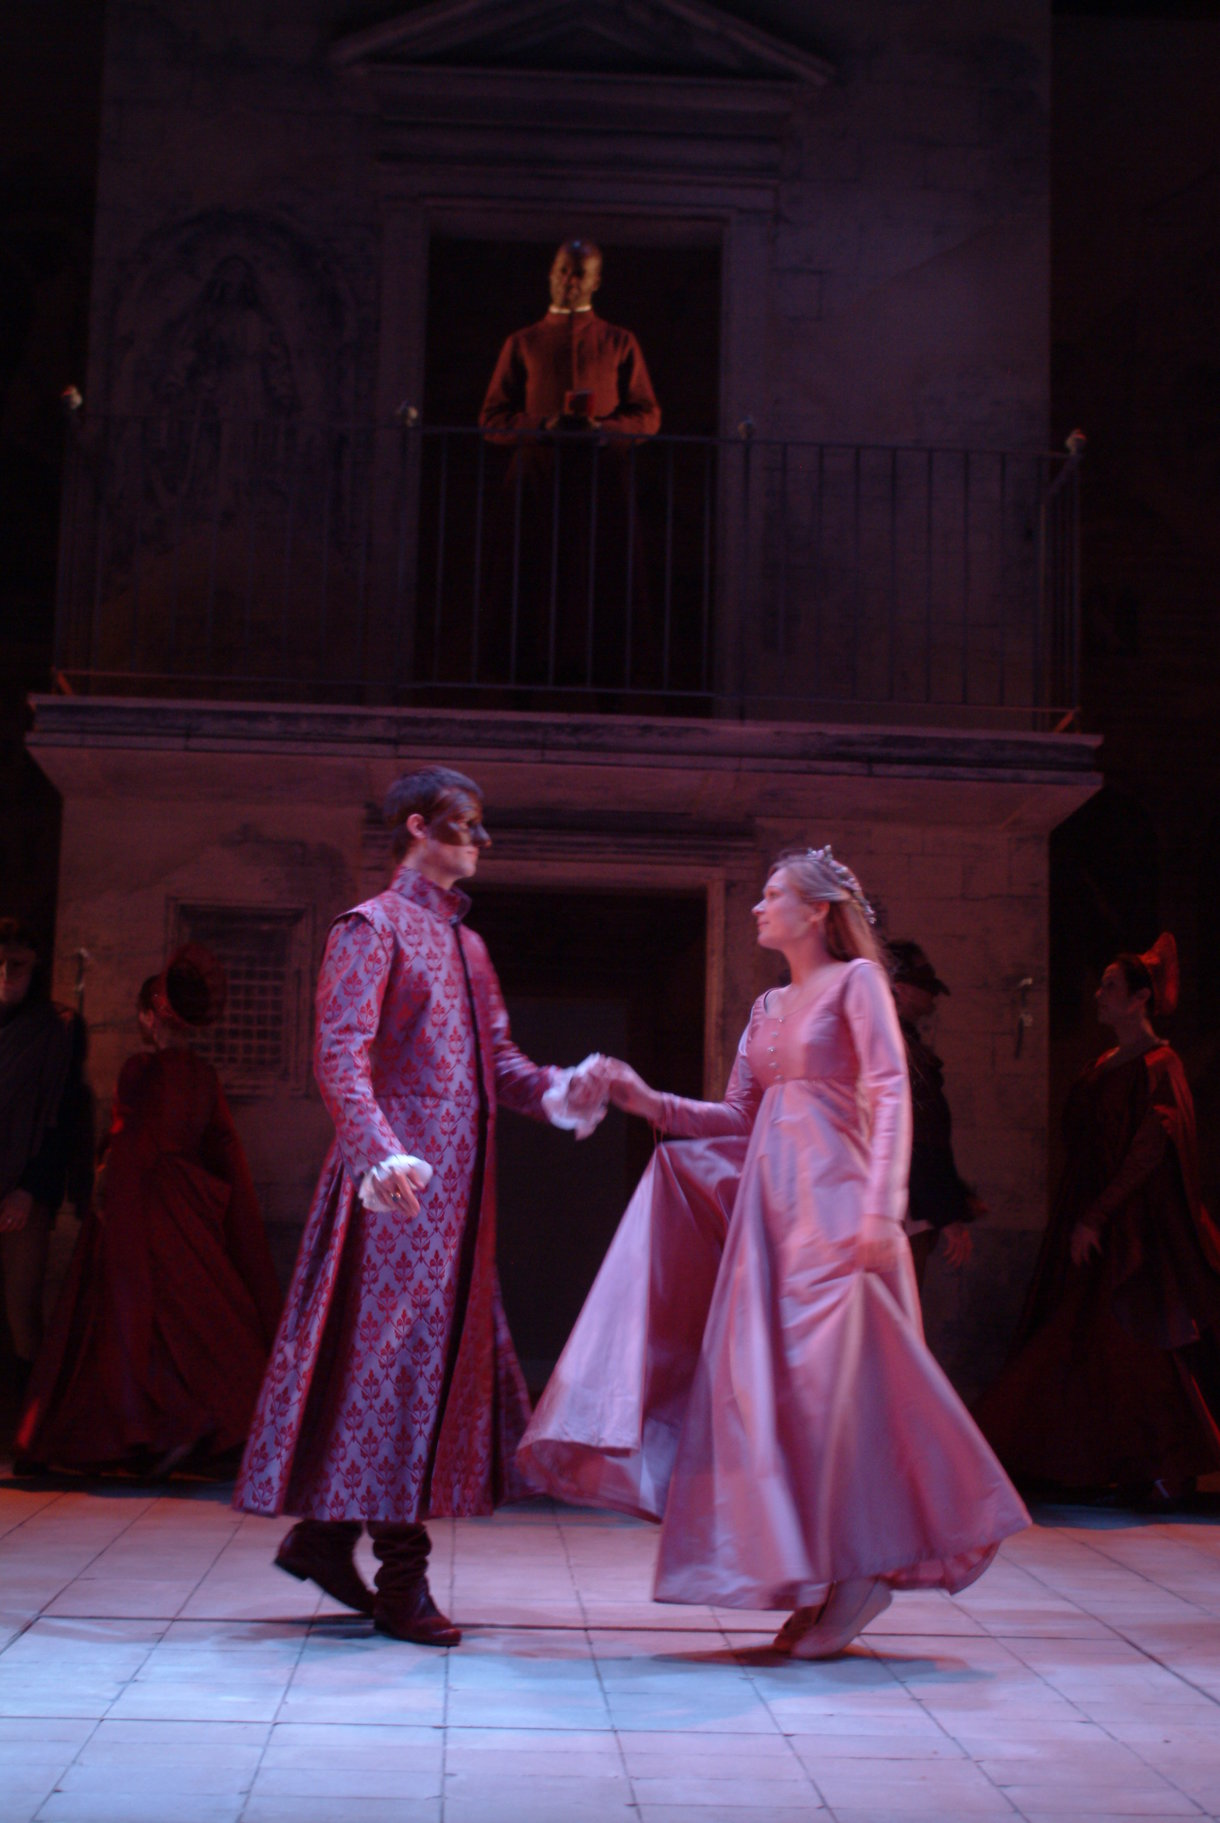 Romeo and Juliet dance at the ball, with masks and formal clothes on.